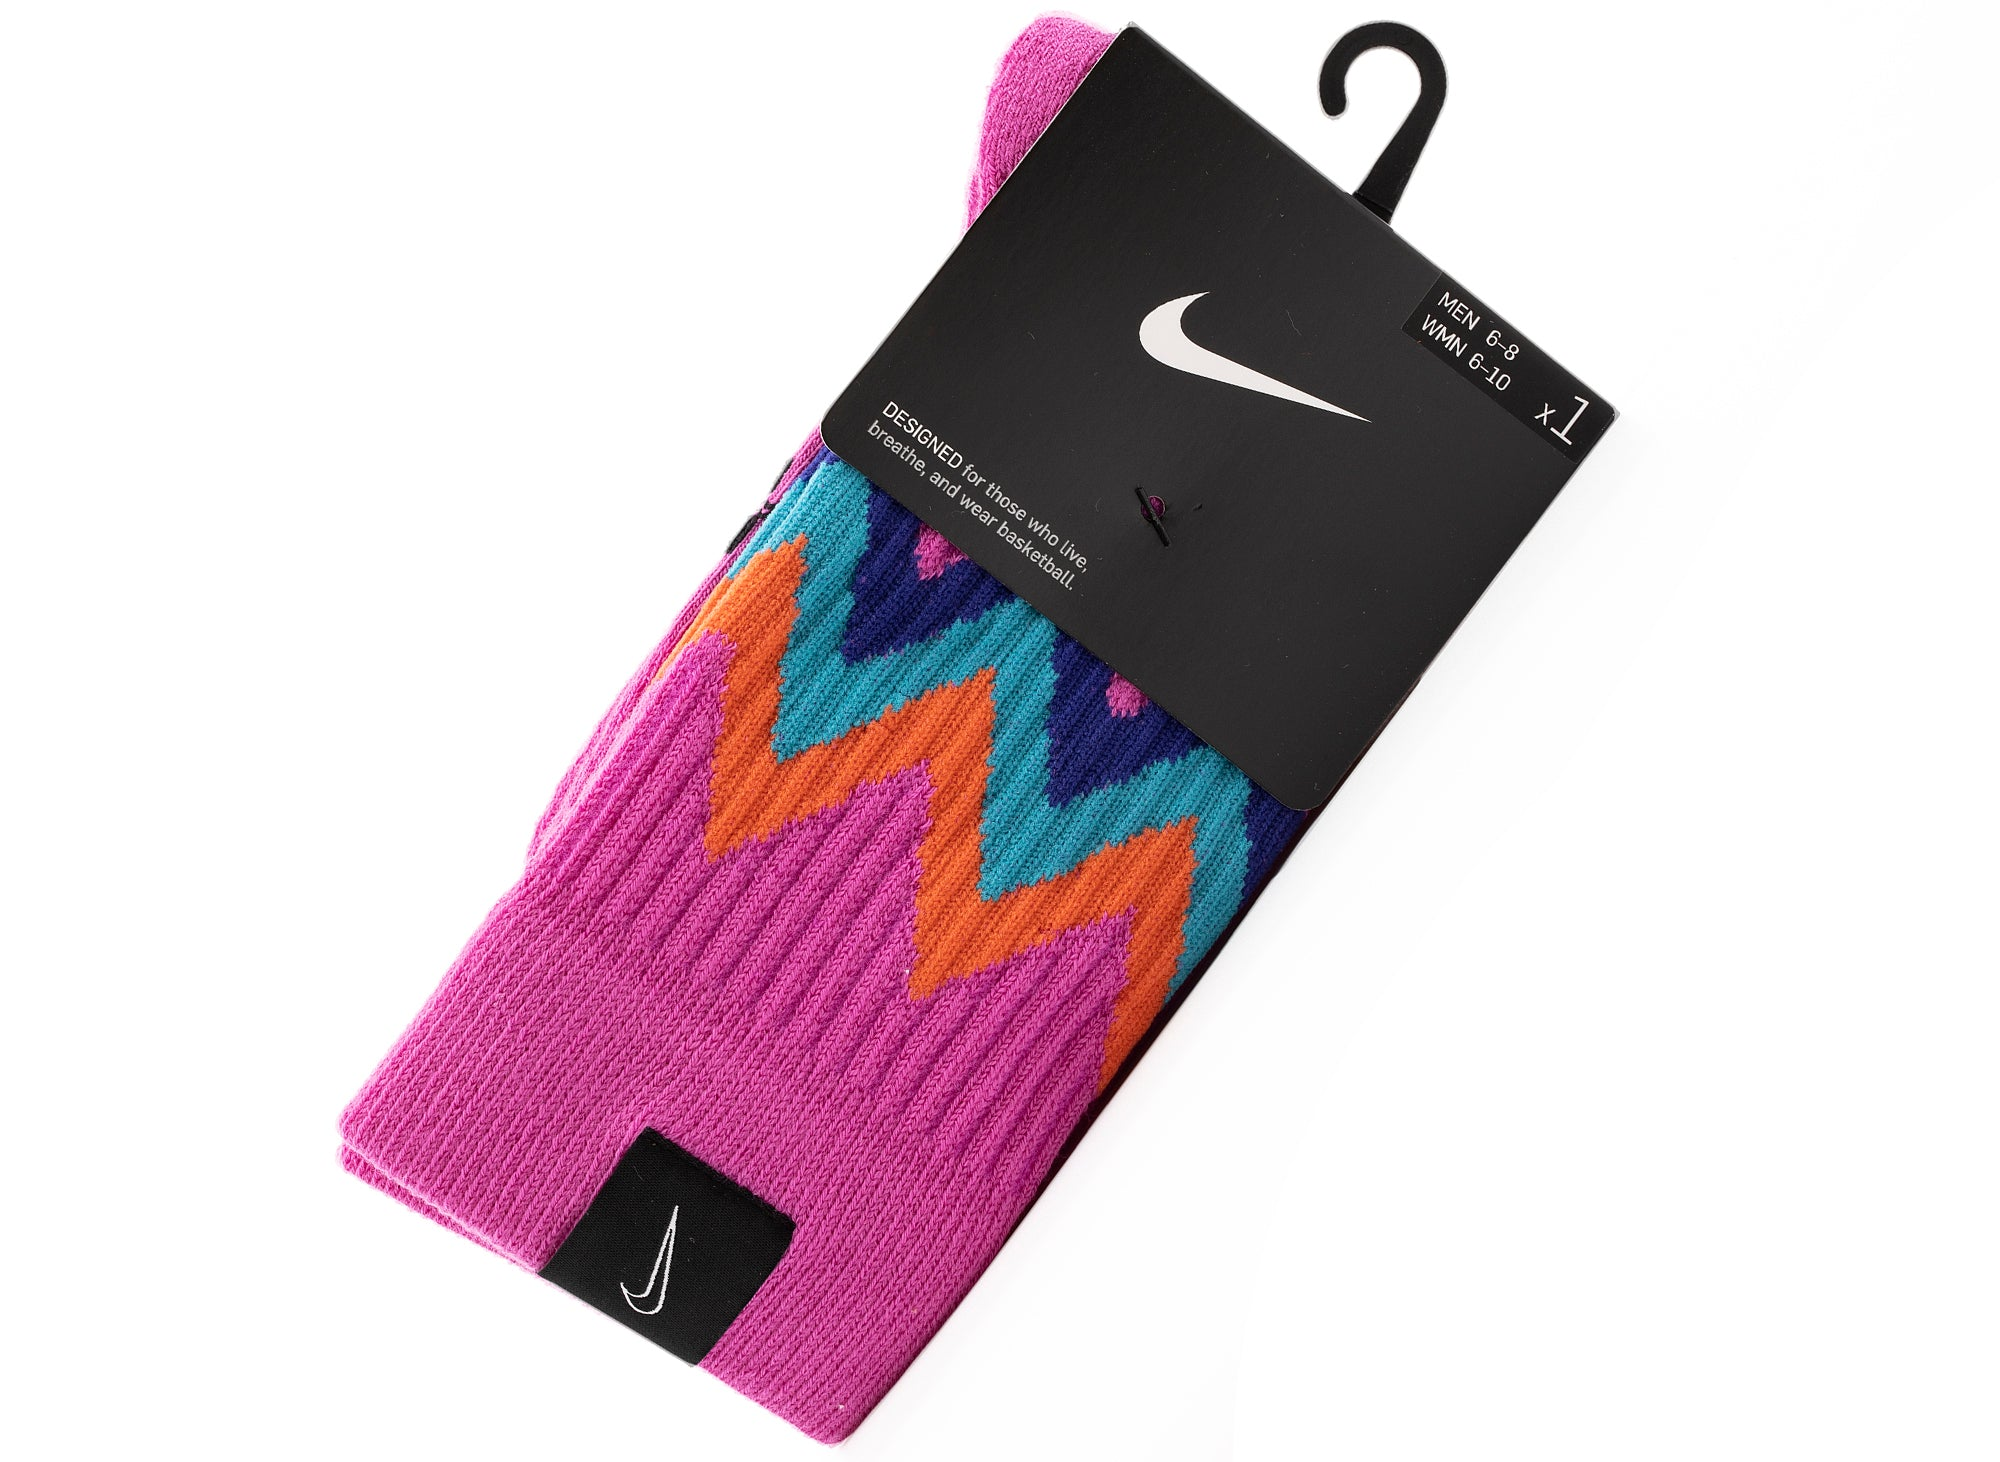 Nike SNKR Crew City Sox in Pink